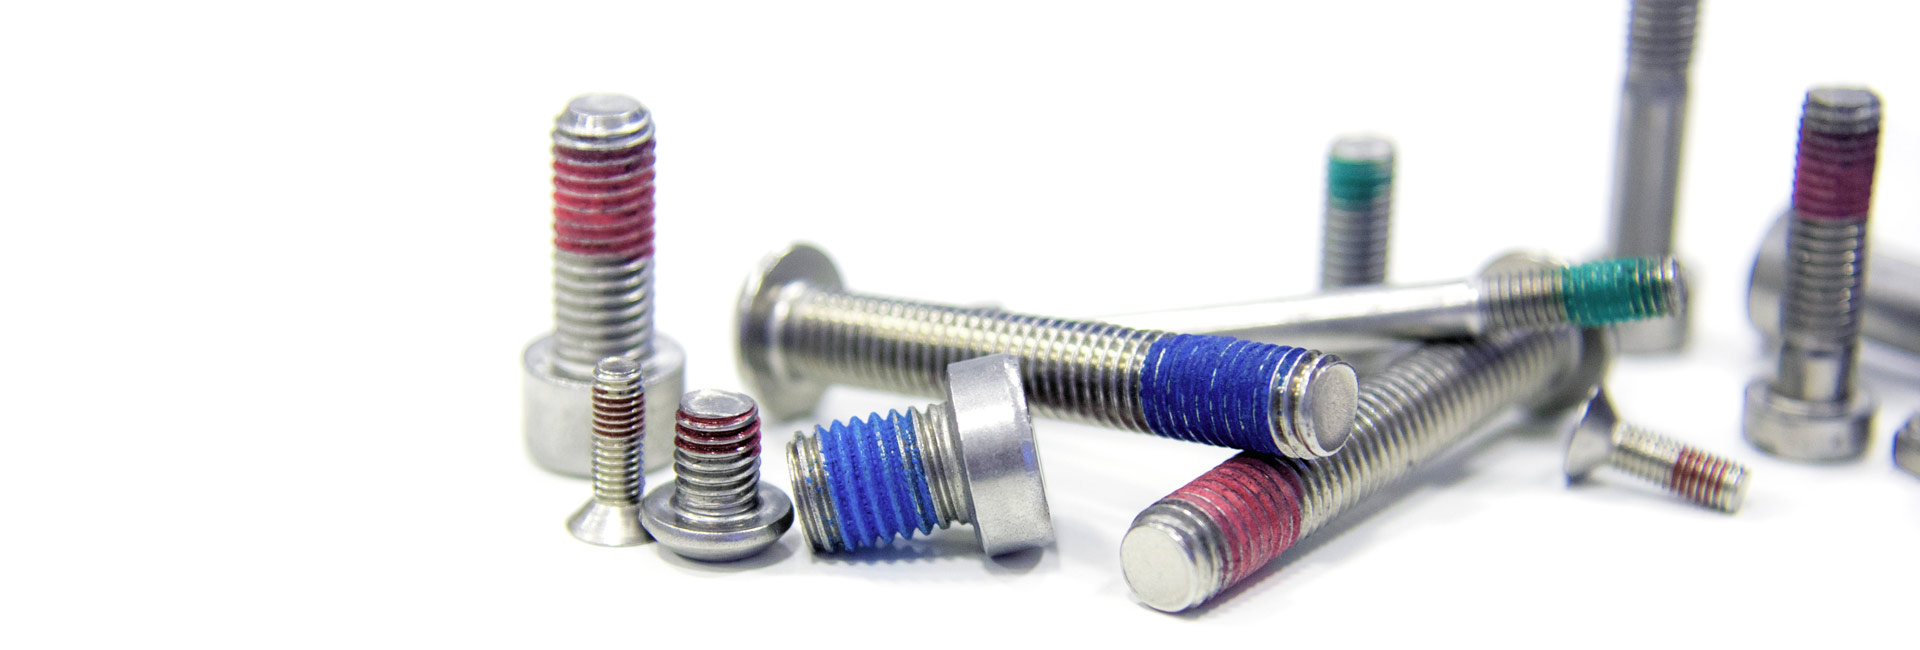 Thread locking for fasteners made of stainless steel